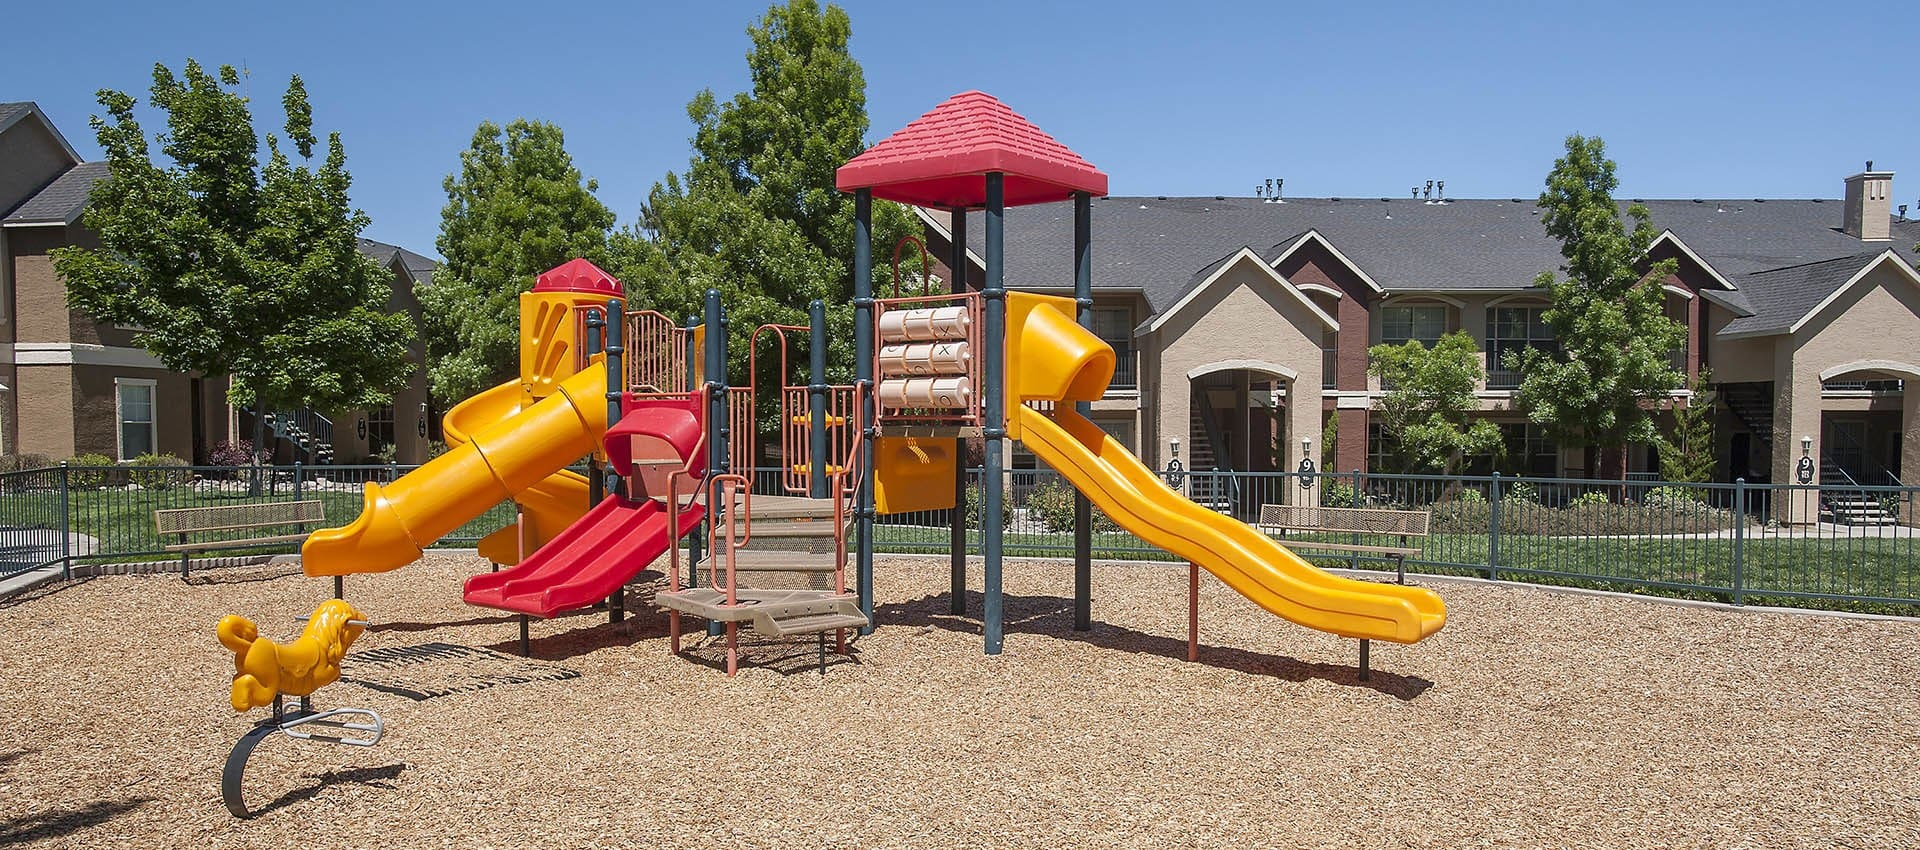 Playground at The Vintage at South Meadows Condominium Rentals in Reno